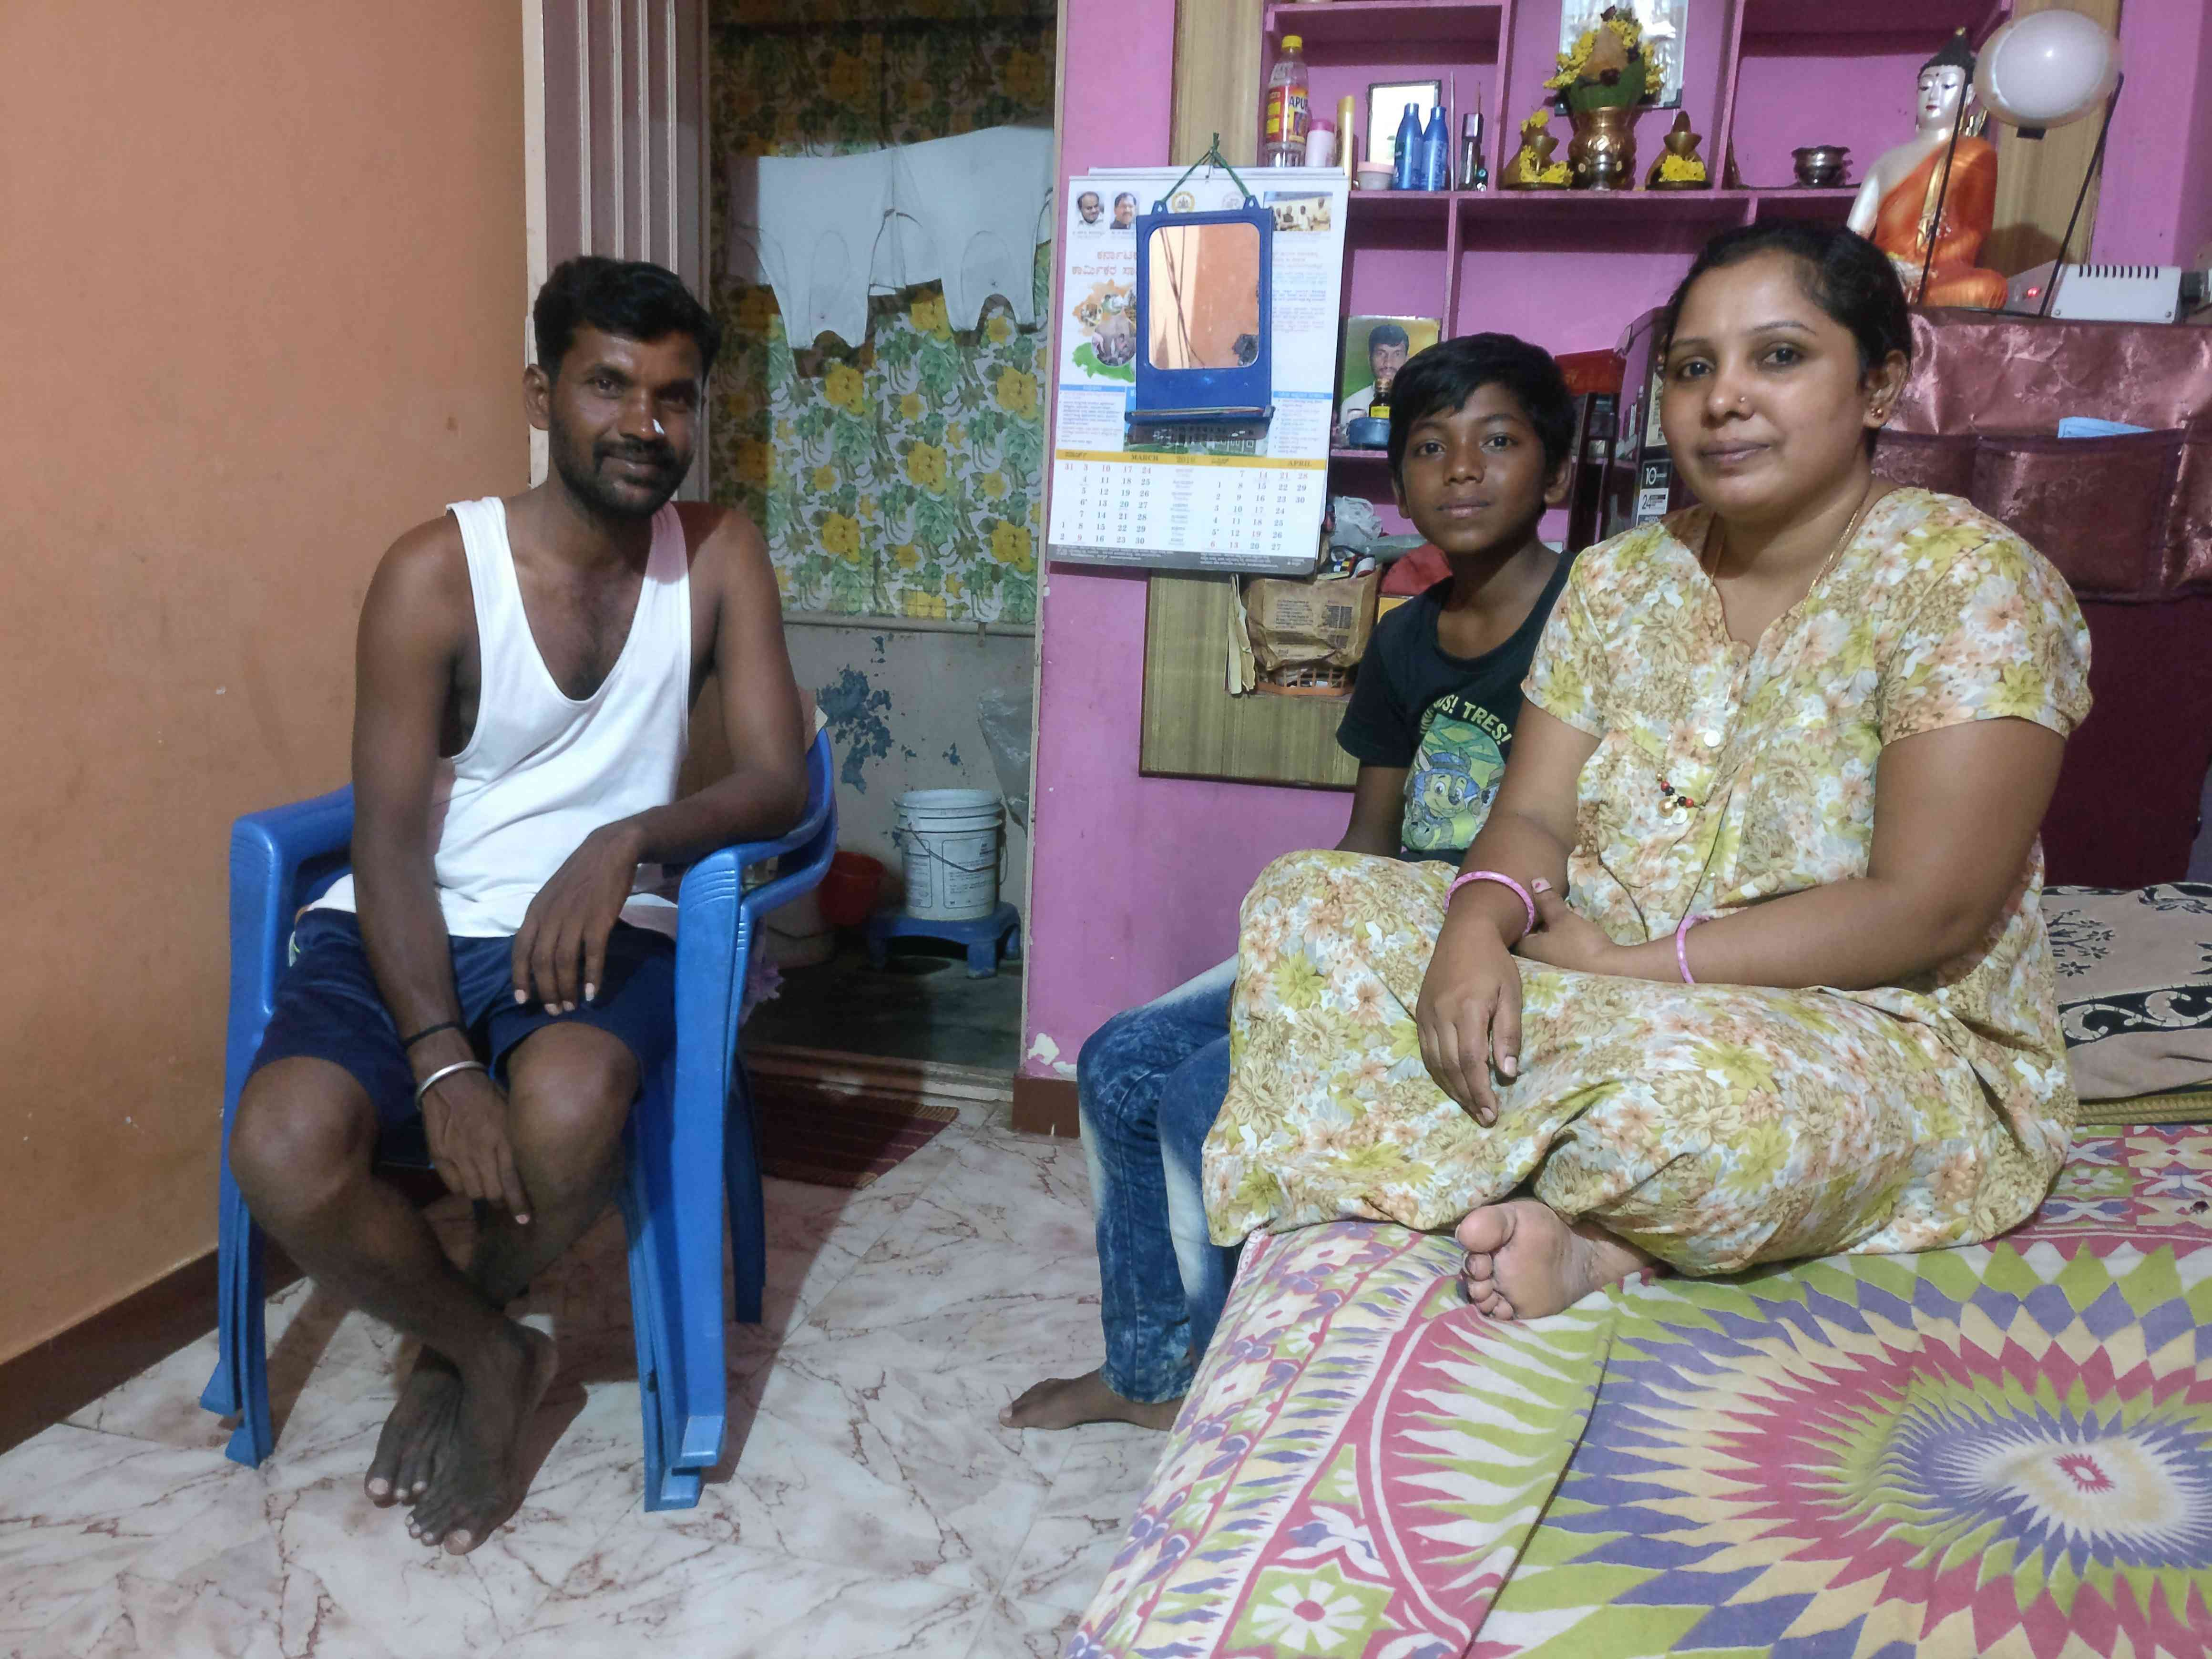 Saritha with her husband Chandru and older son Prithvi sit in the front room of their rented two-room house to watch an Indian Premier League match between Chennai Super Kings and Royal Challengers Bangalore. (Photo: Nayantara Narayanan)